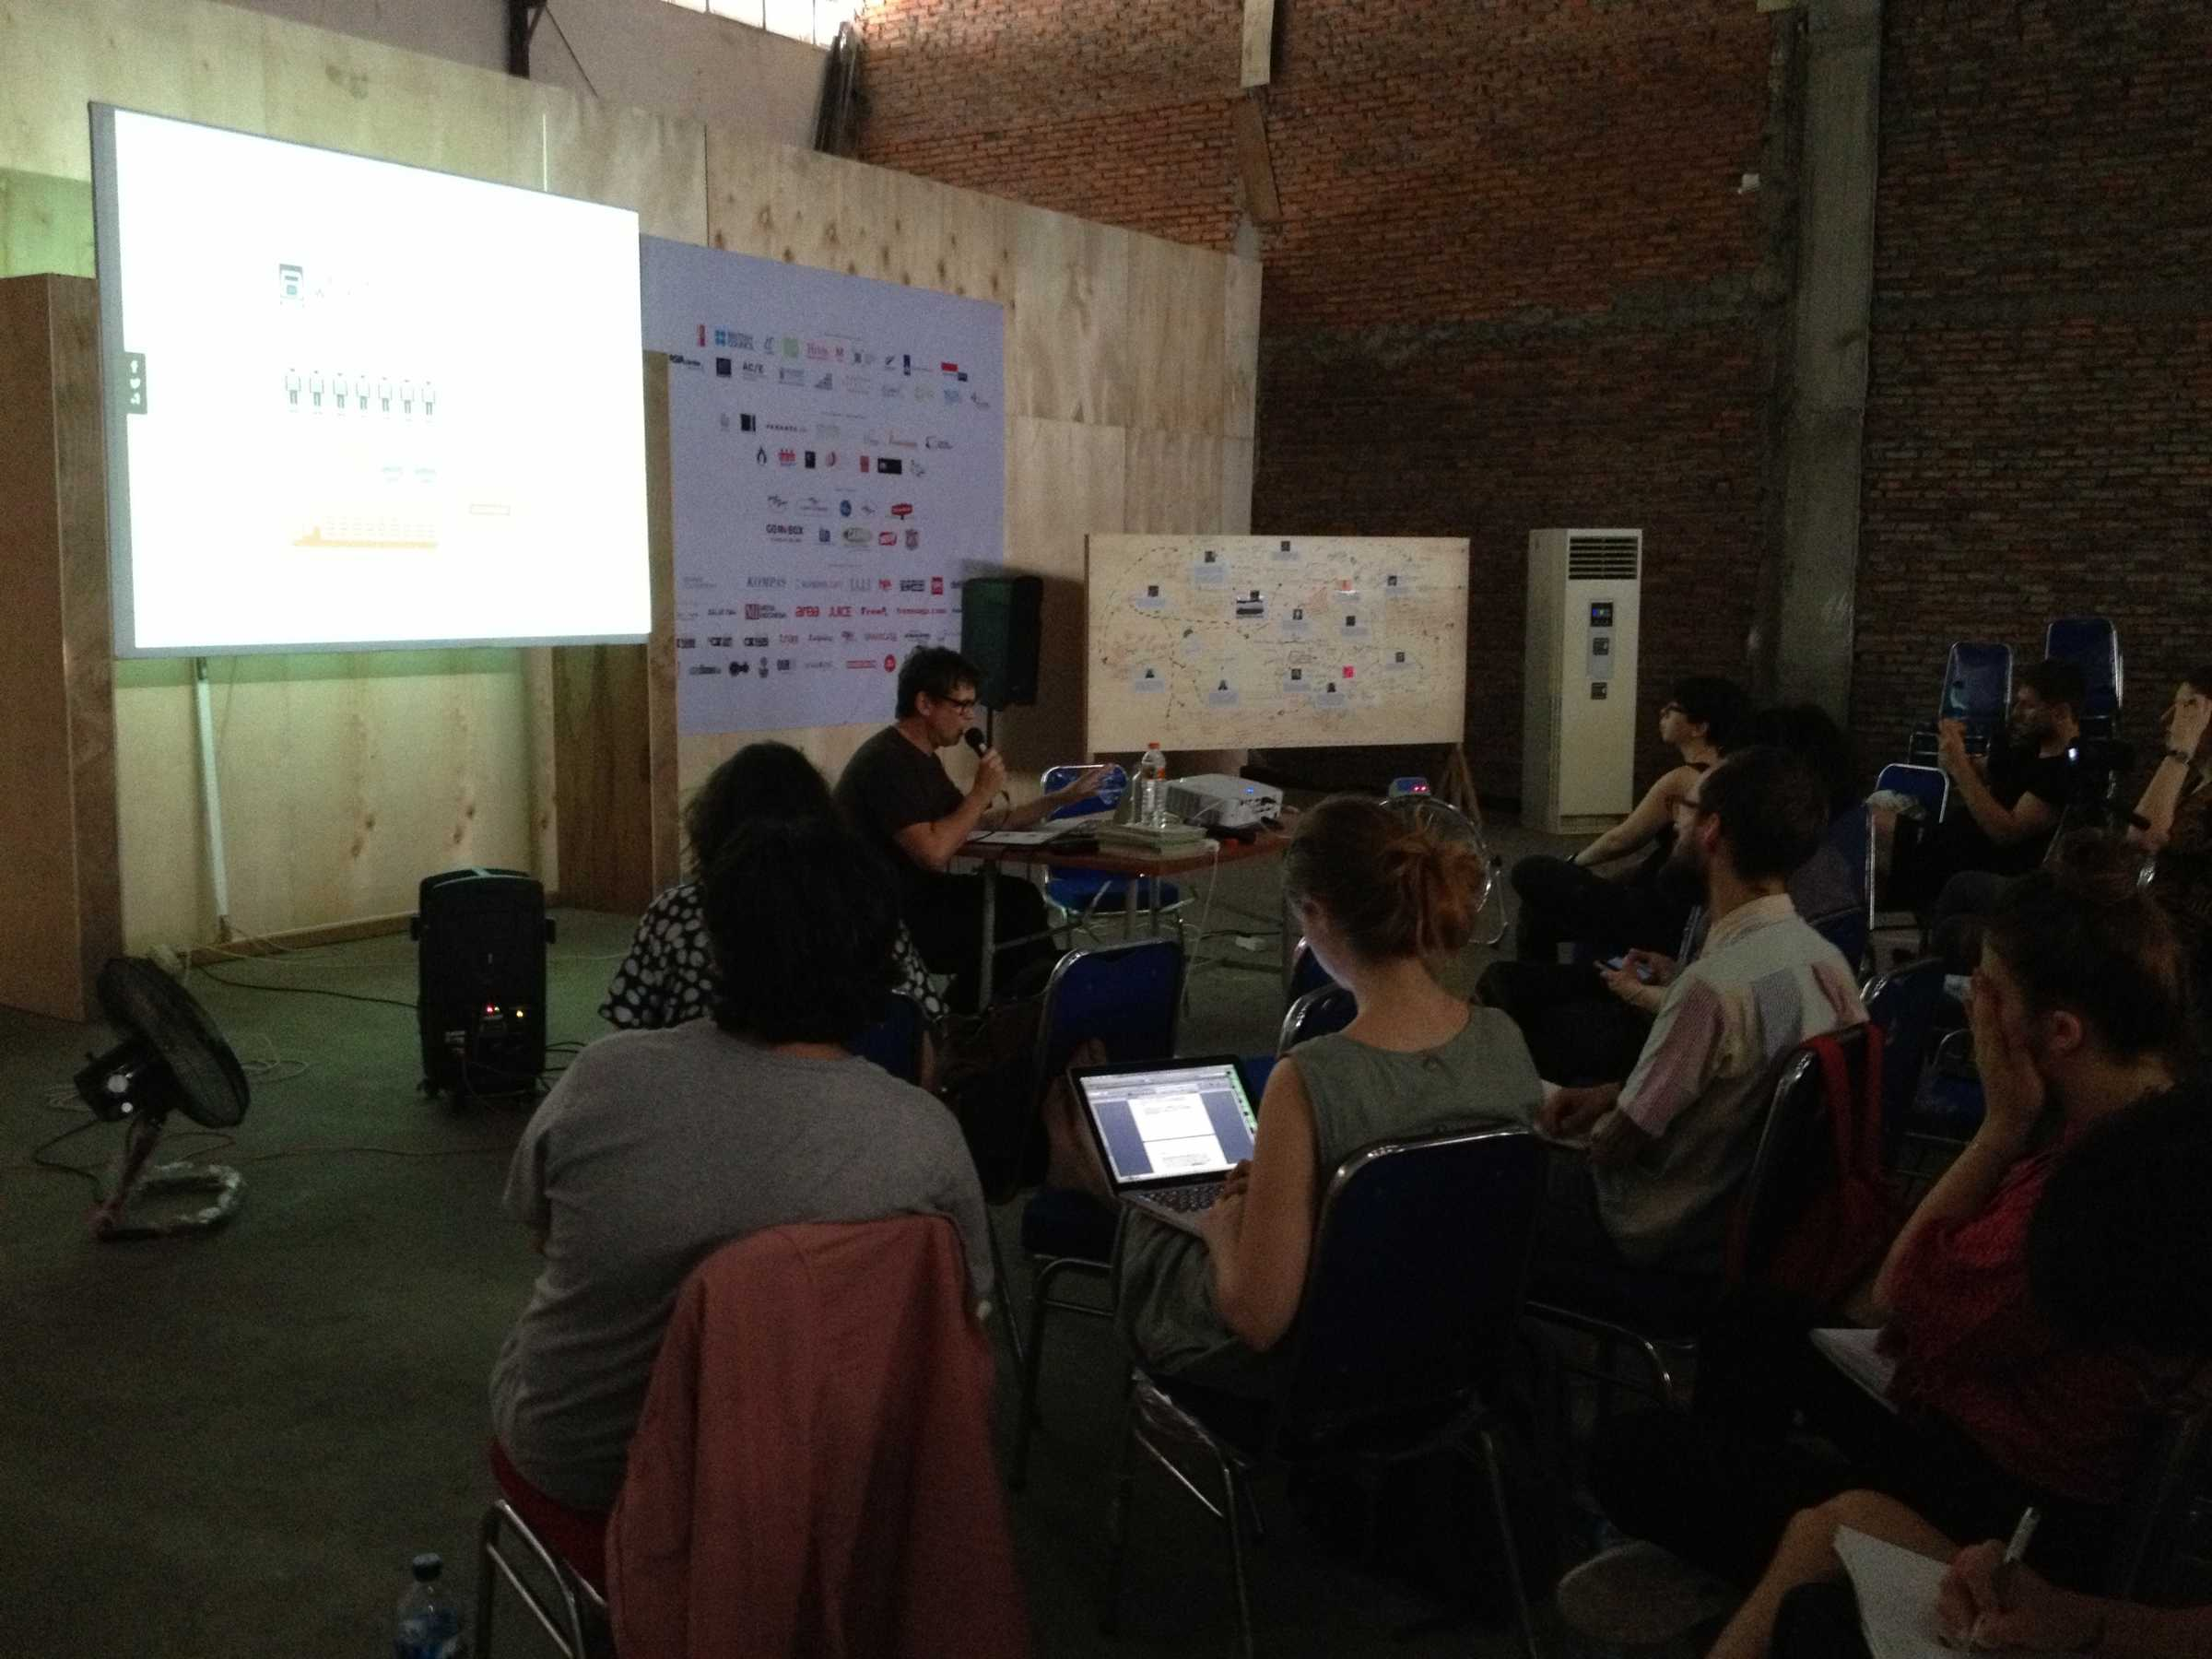 Brett Neilson lecturing at the Jakarta Biennale 2015 upon an invitation by DAI's theory tutors Rachel O'Reilly and Marina Vishmidt.